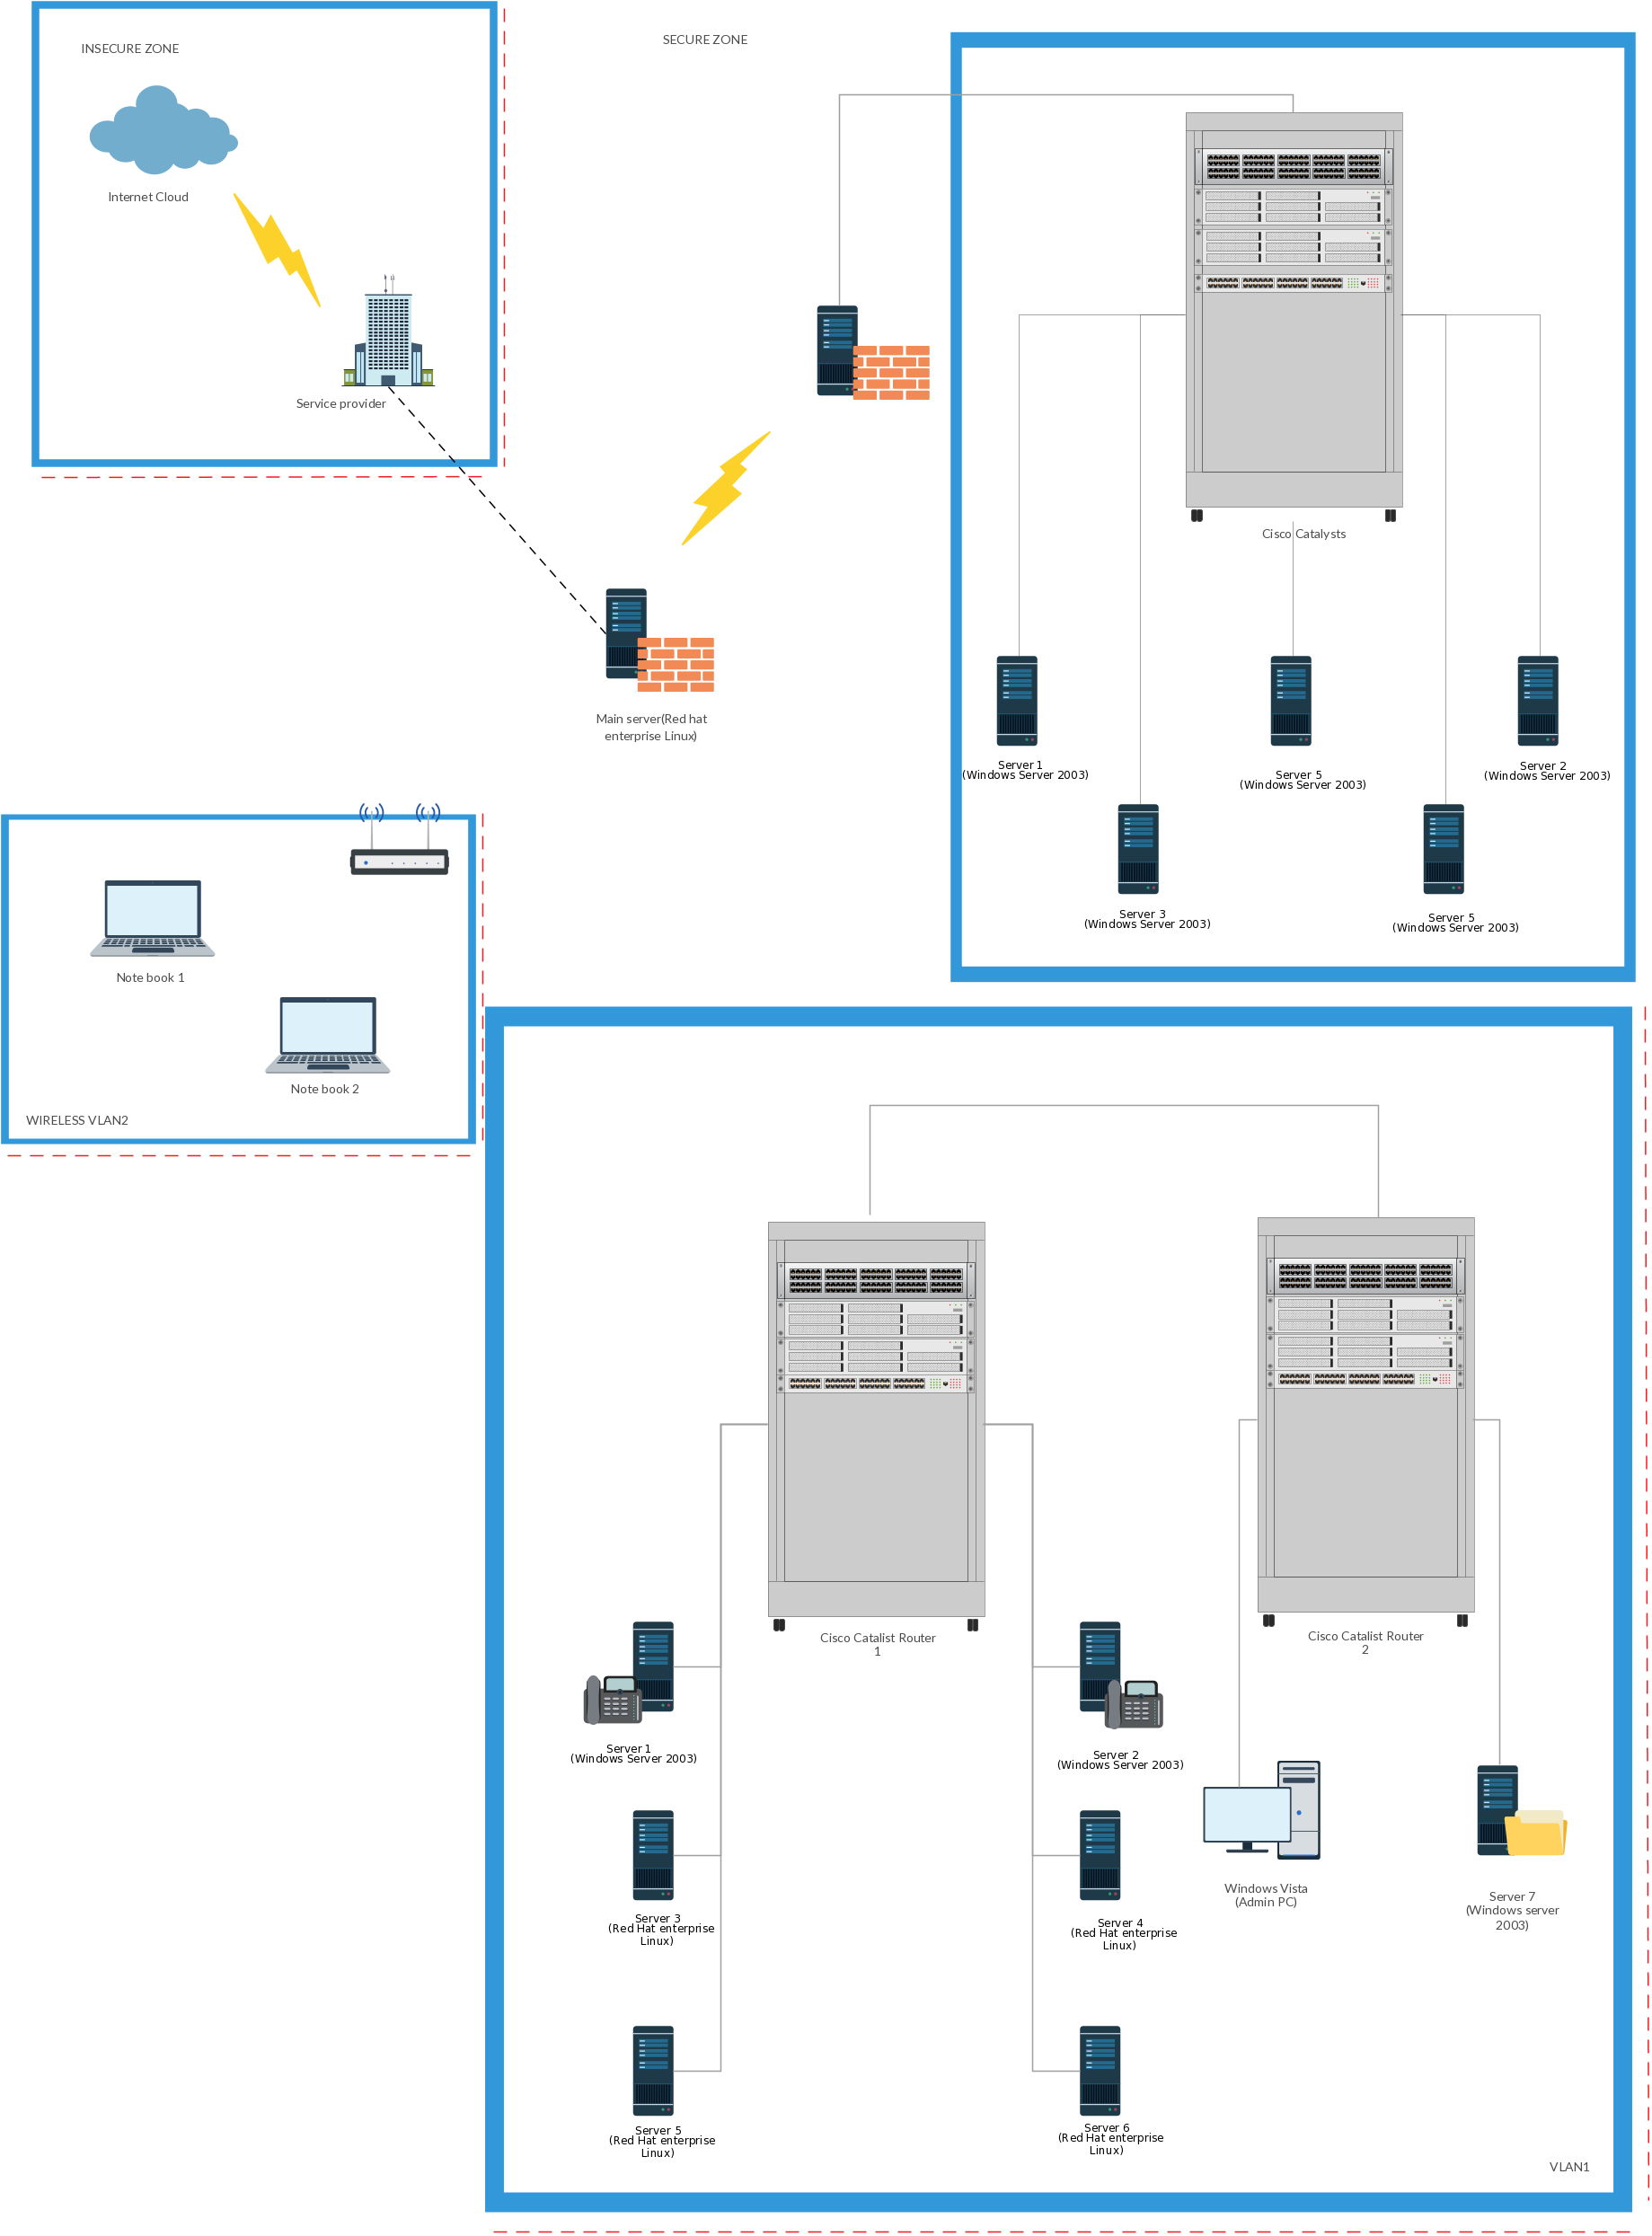 medium resolution of virtual local area network network diagram template click the image to use as a template